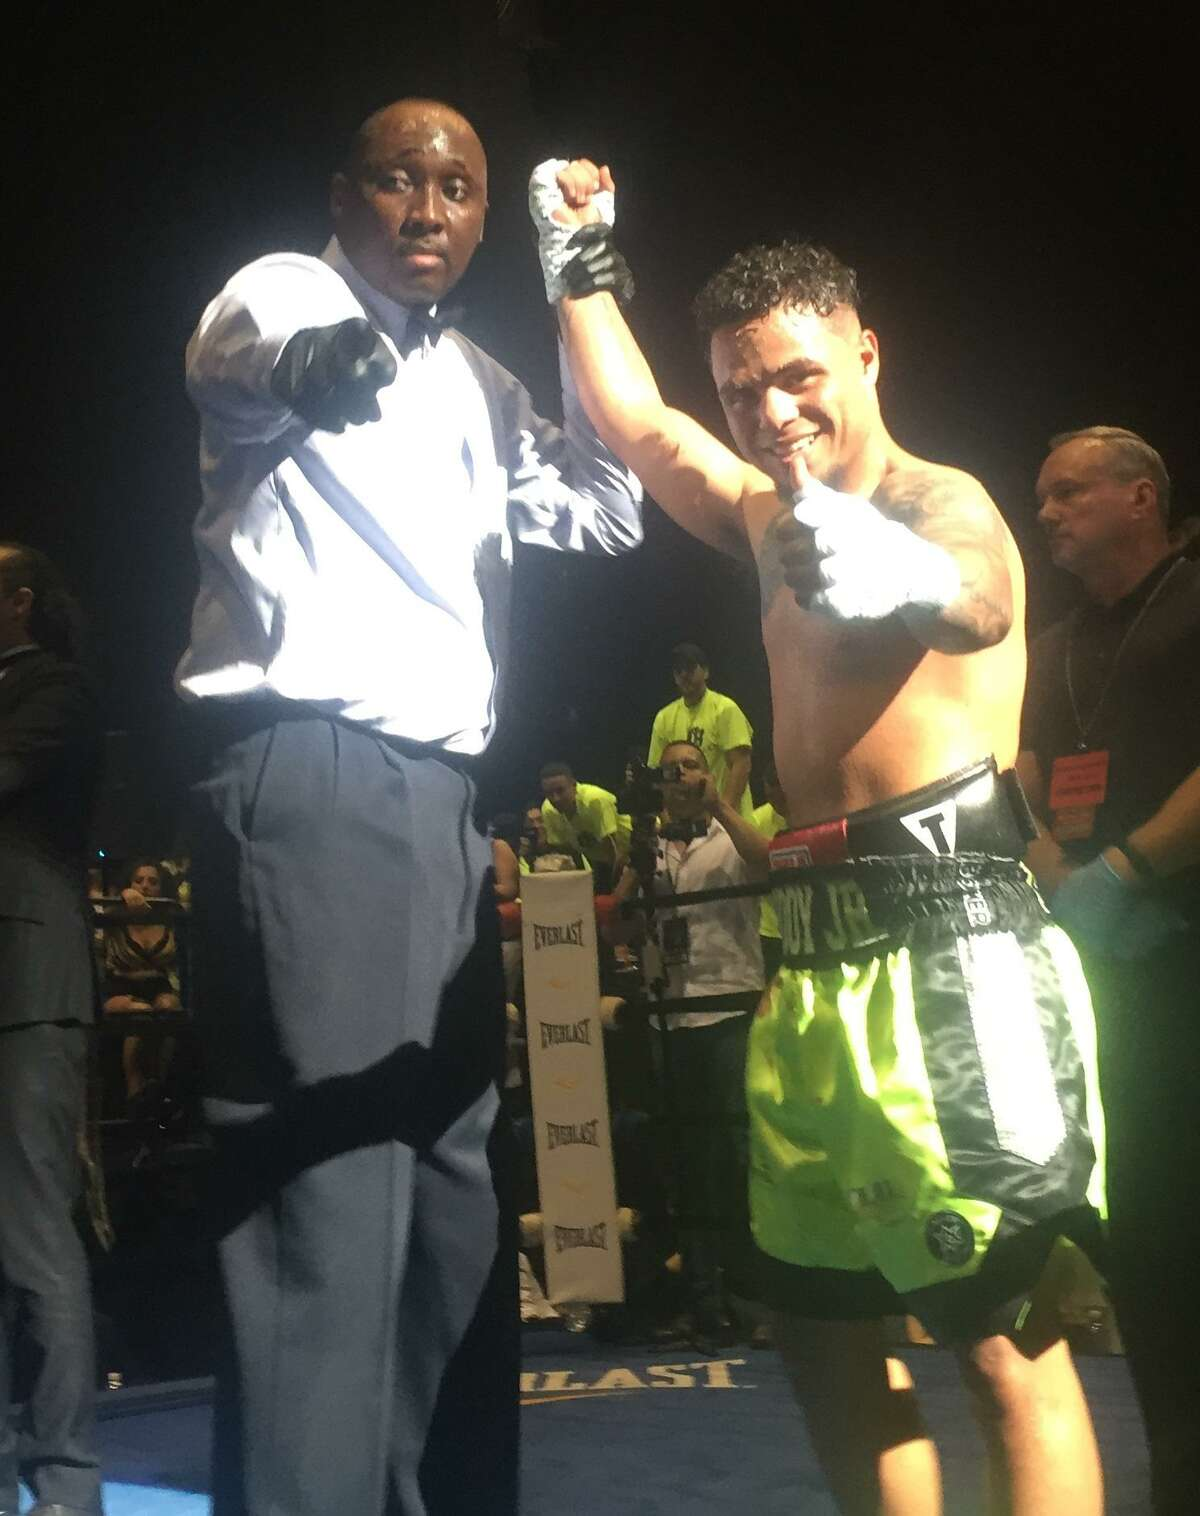 Boxer Omar Bordoy, right, is declared the winner by knockout in the sixth round of his fight against Alexander Picot at the Xfinity Theatre in Hartford on June 16, 2018.